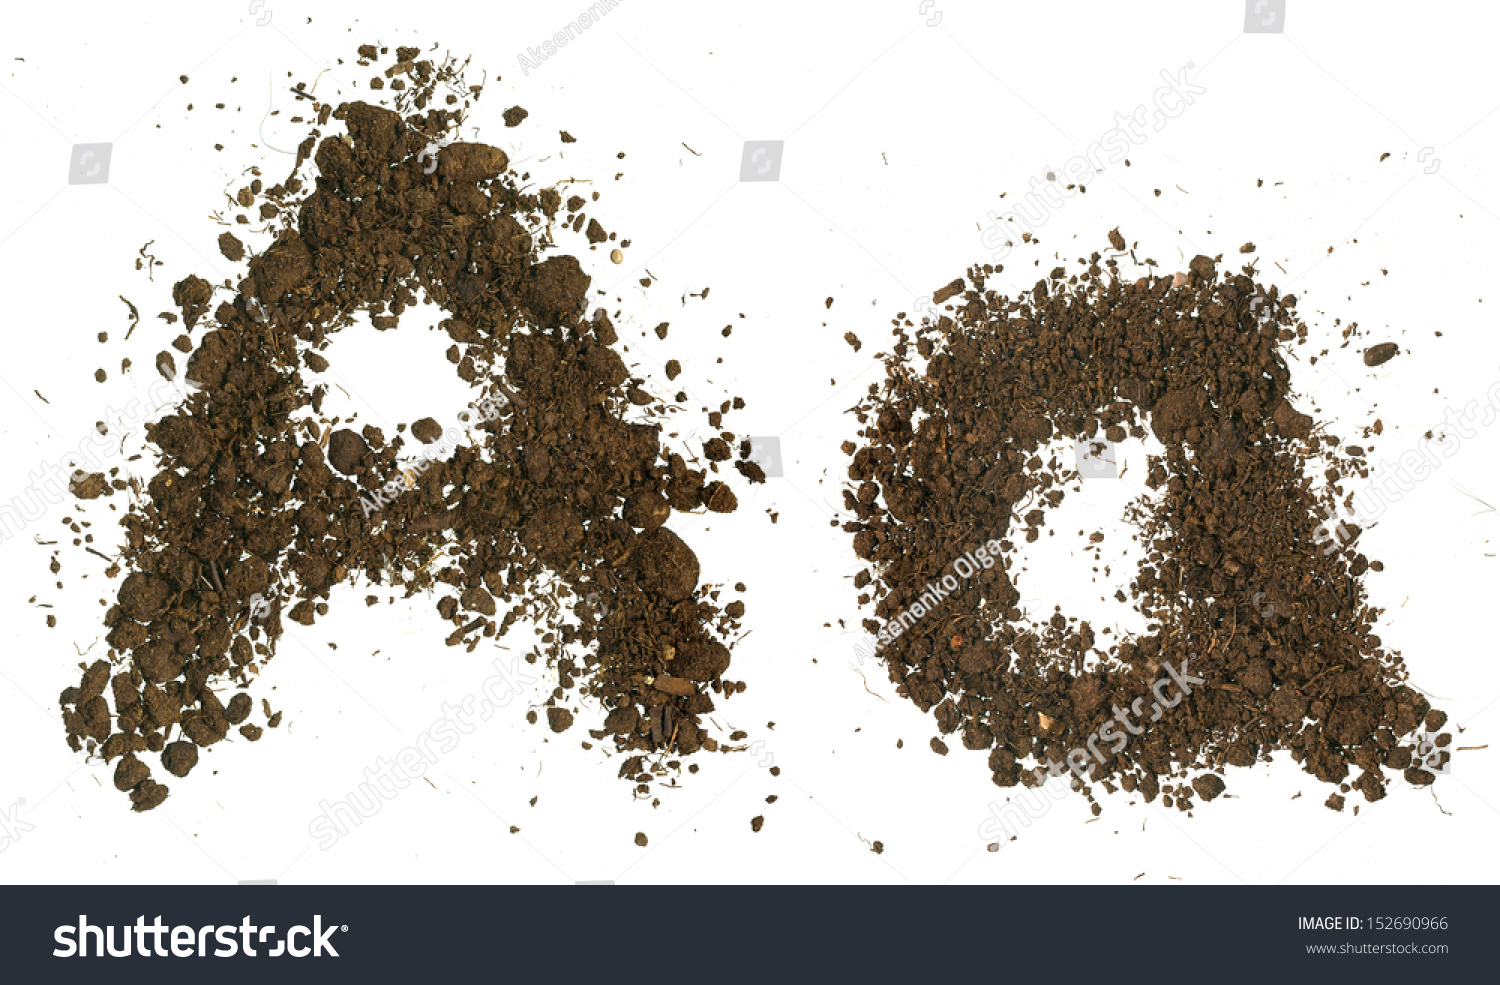 Soil alphabet letters stock photo 152690966 shutterstock for Soil 8 letters